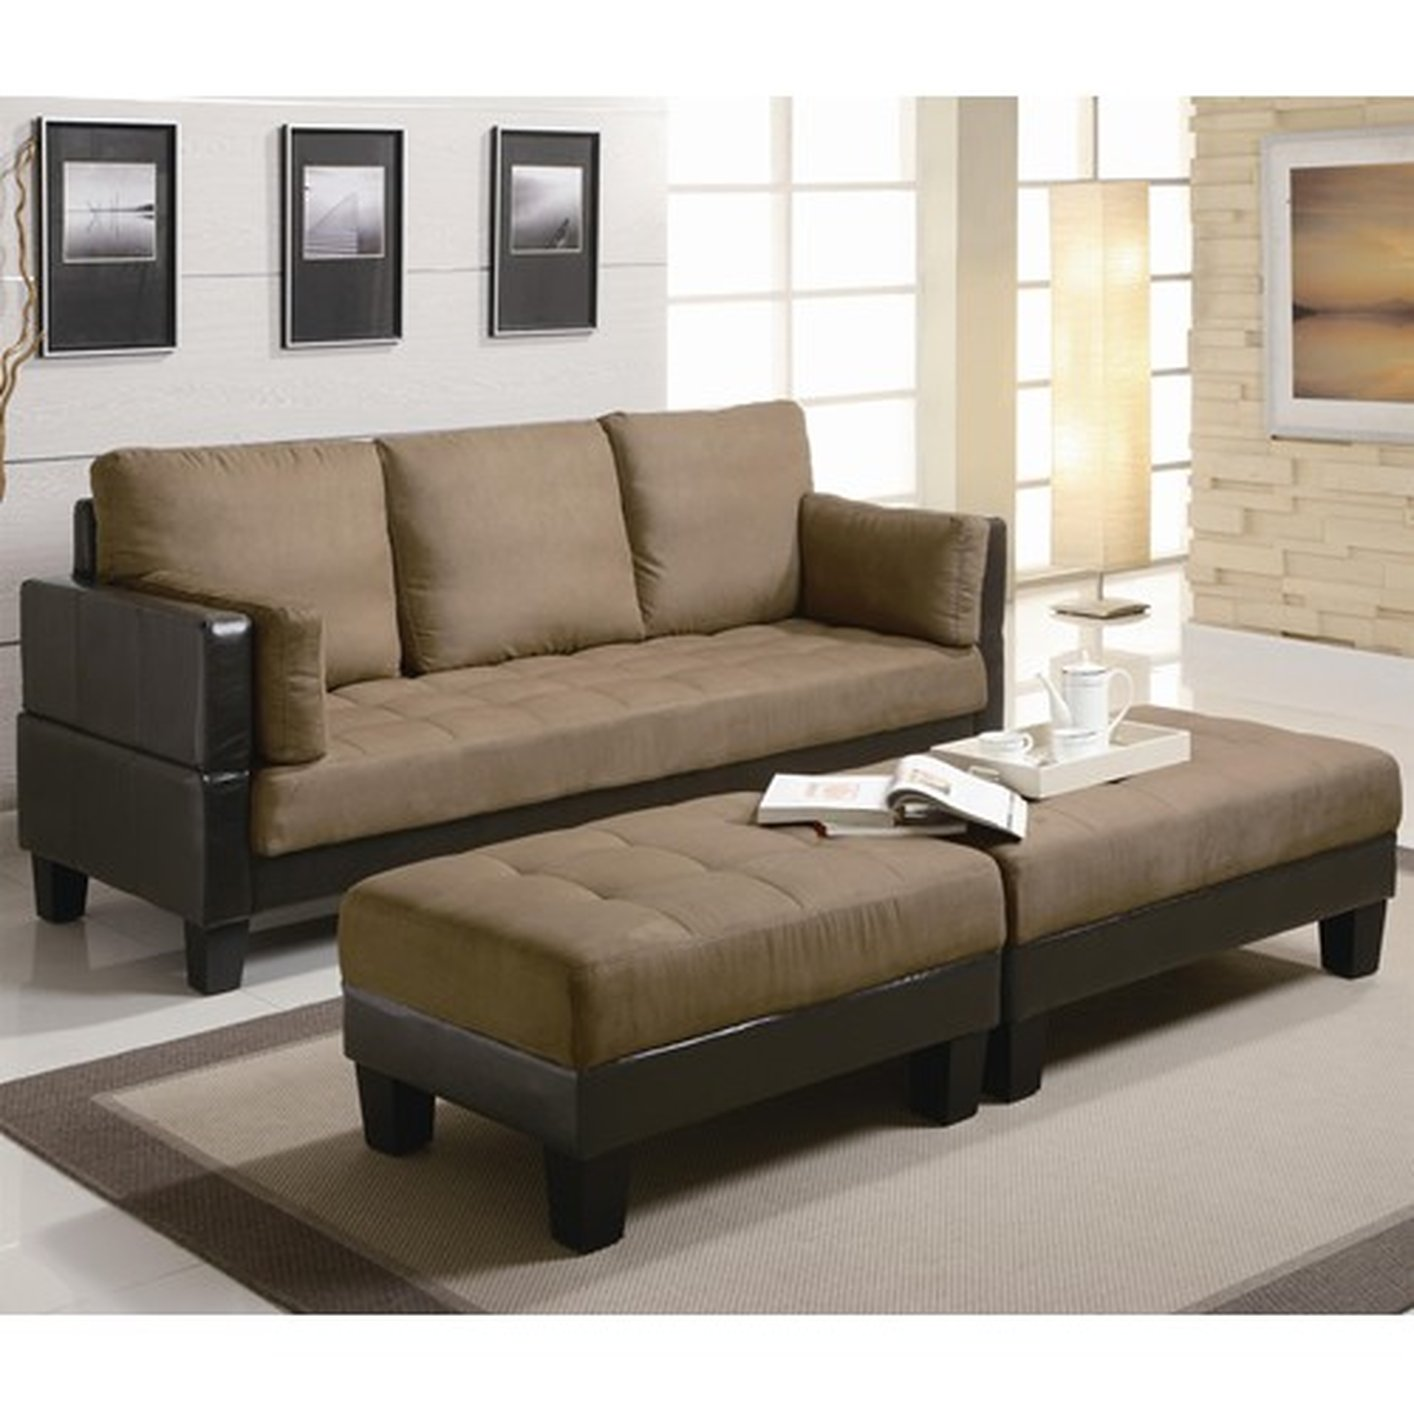 brown fabric sofa lounge abuja nigeria bed and ottoman set steal a furniture outlet los angeles ca